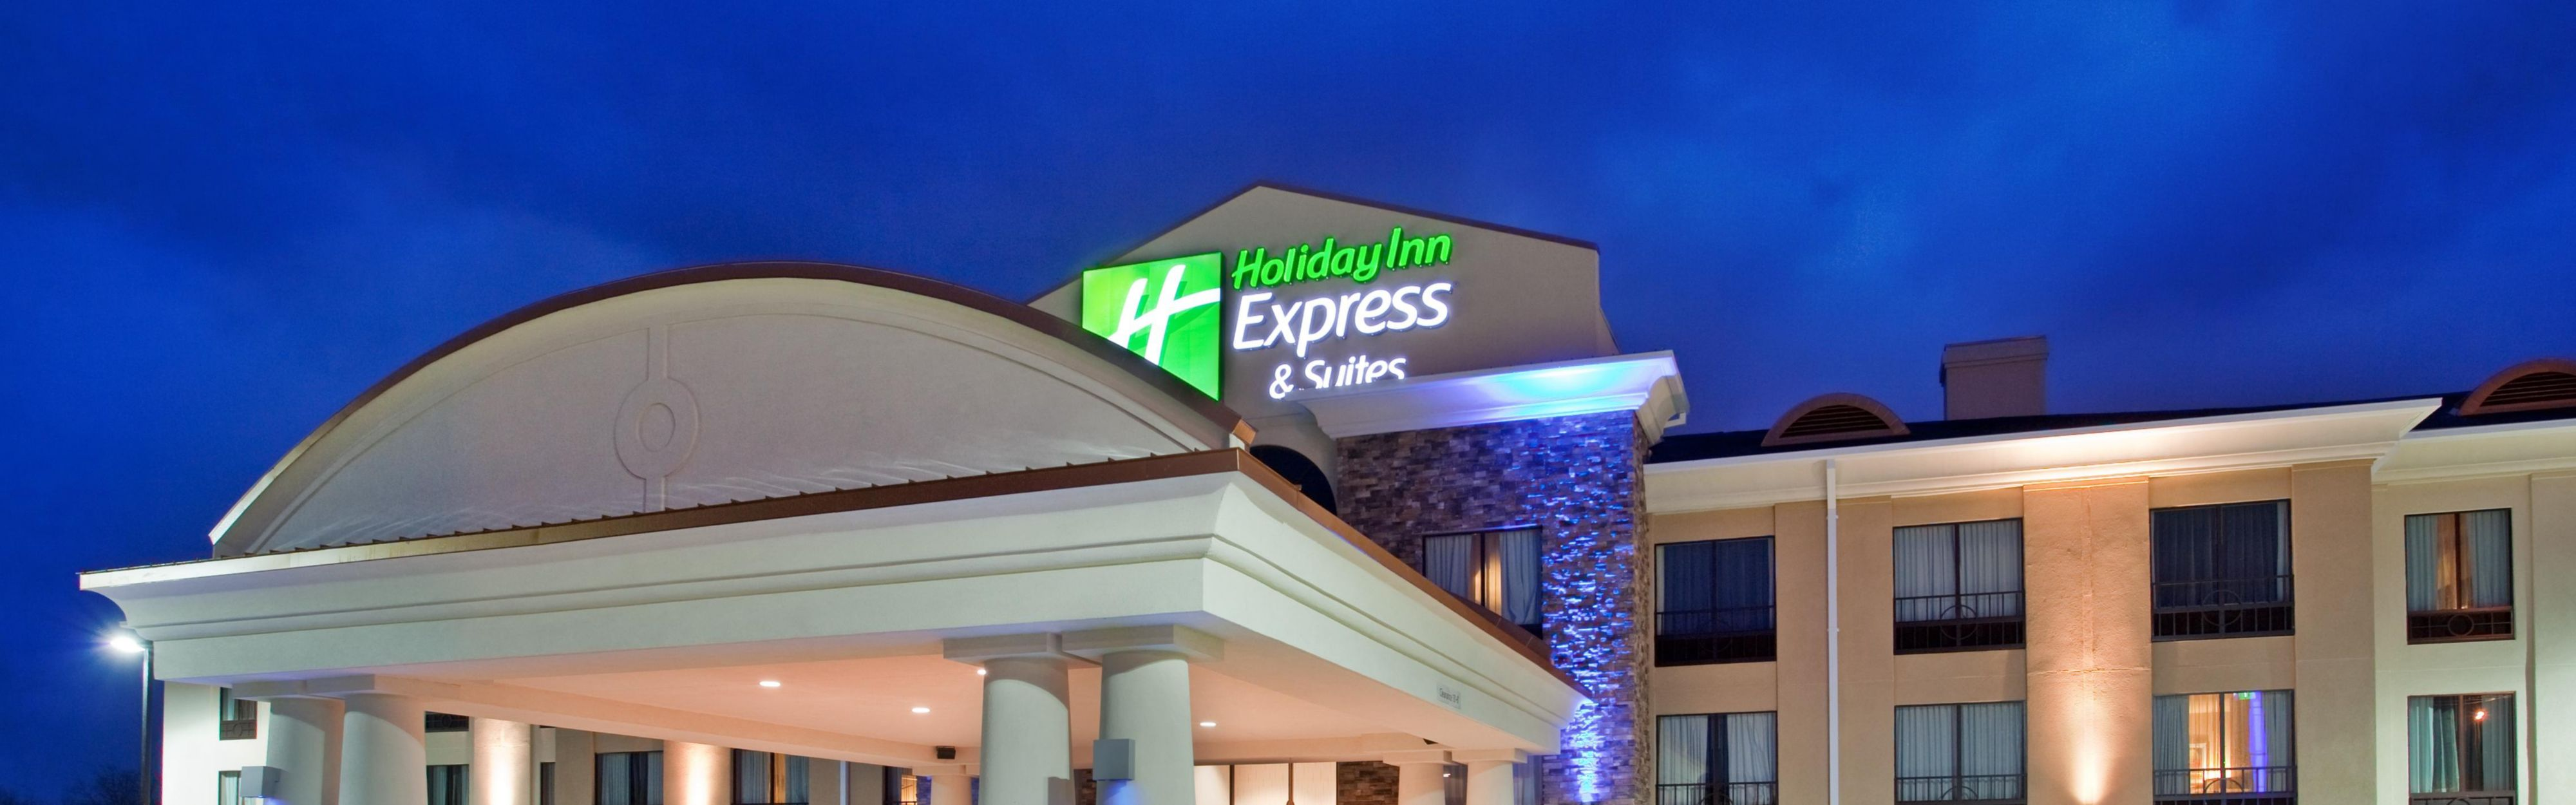 Holiday Inn Express & Suites Saint Robert - Leonard Wood image 0